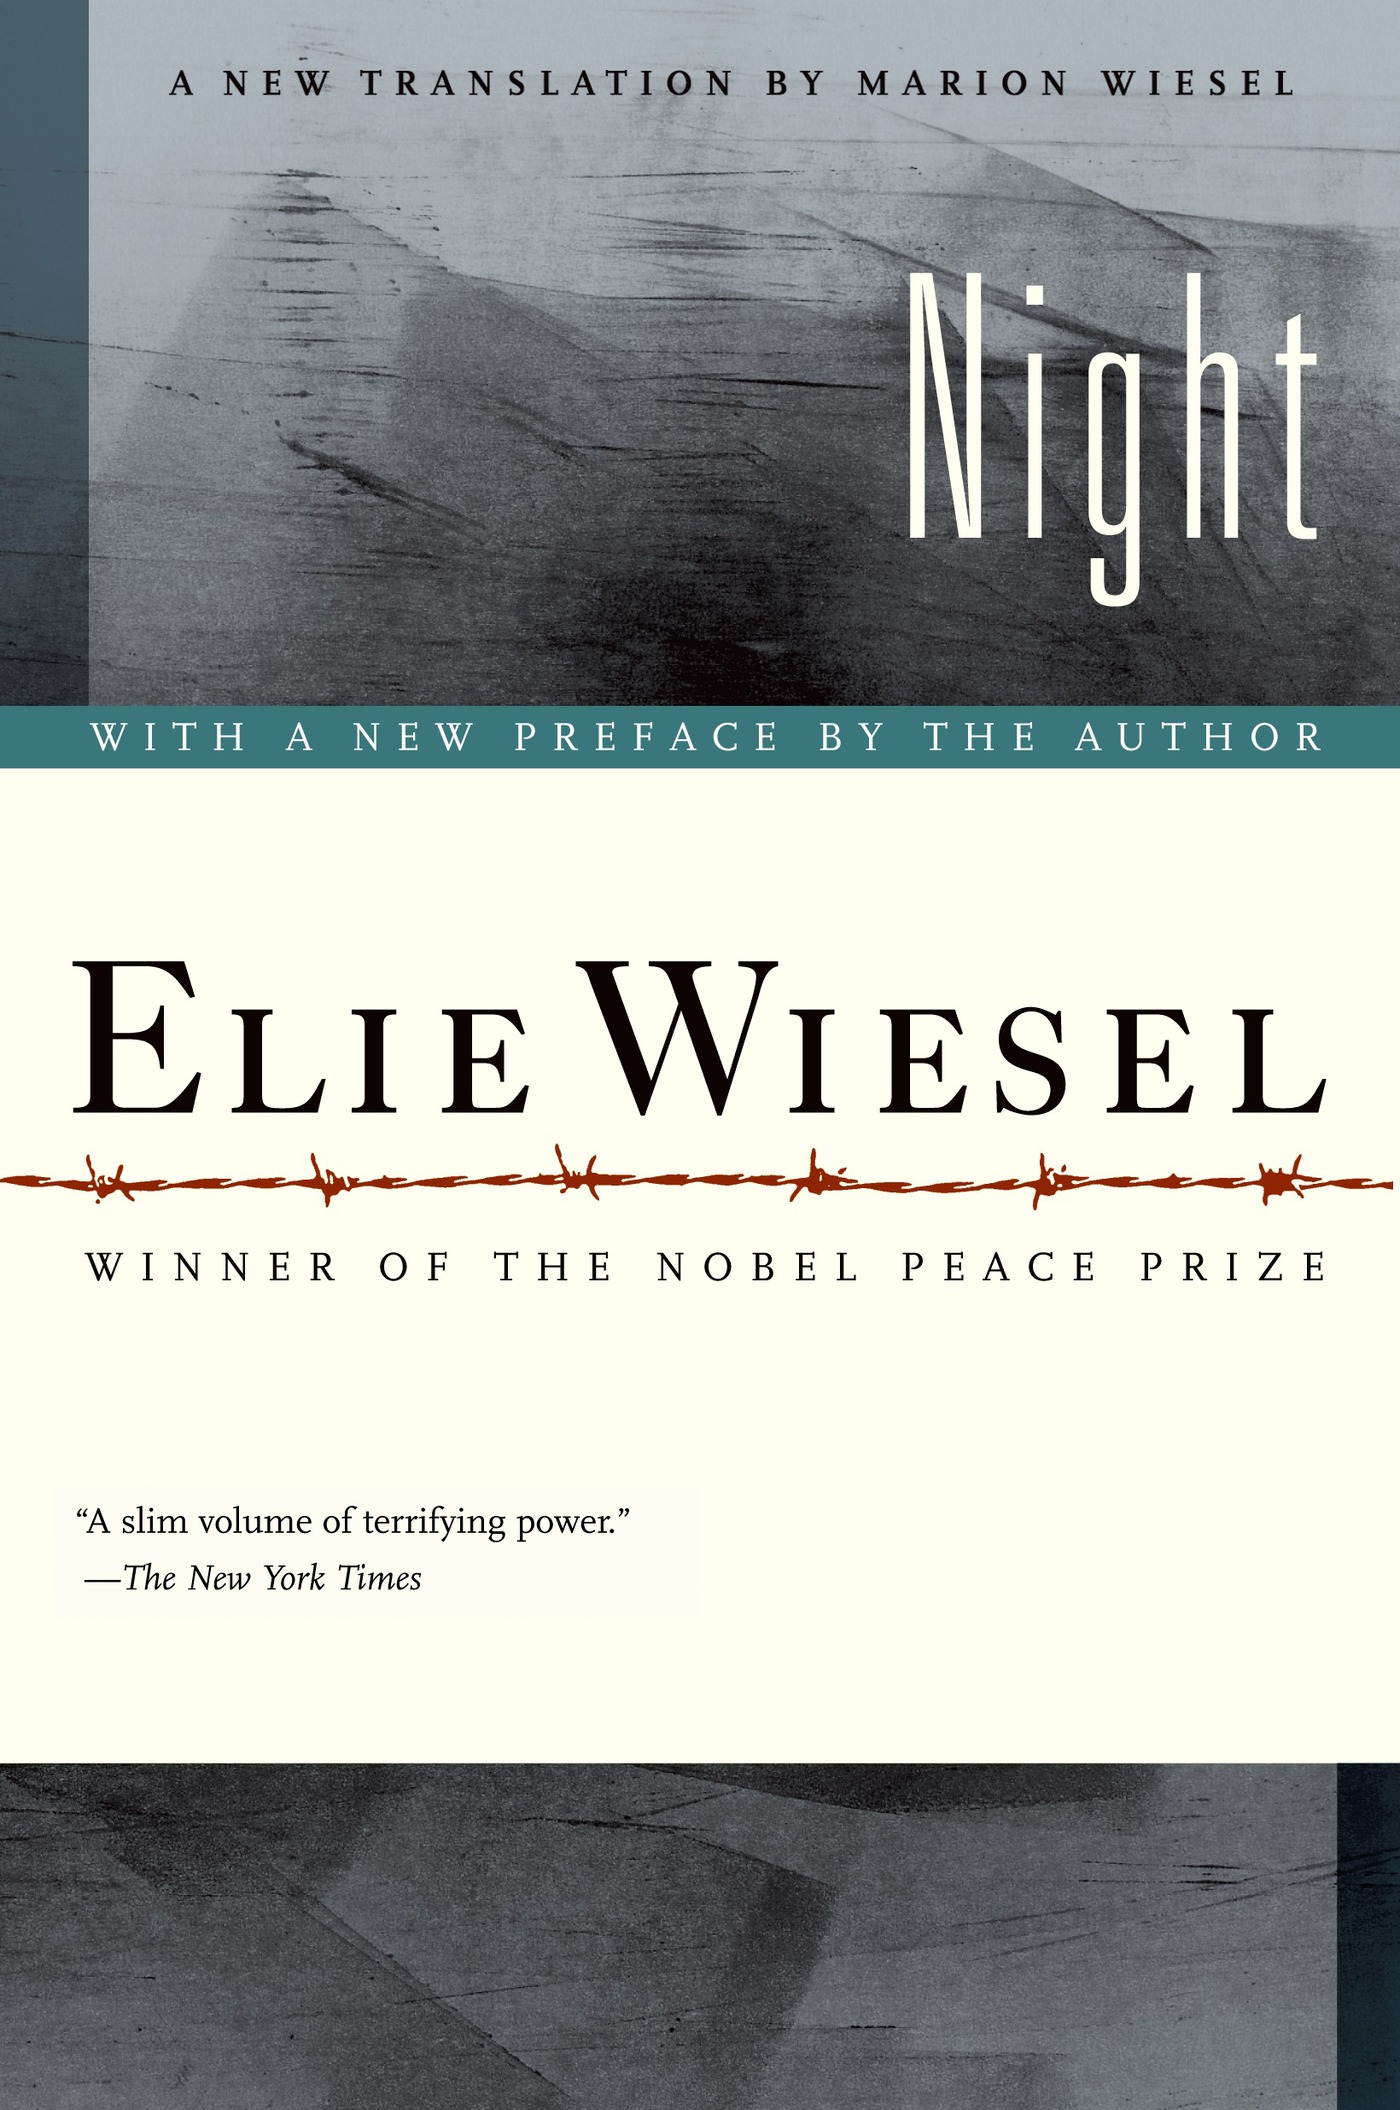 Night By: Elie Wiesel,Marion Wiesel